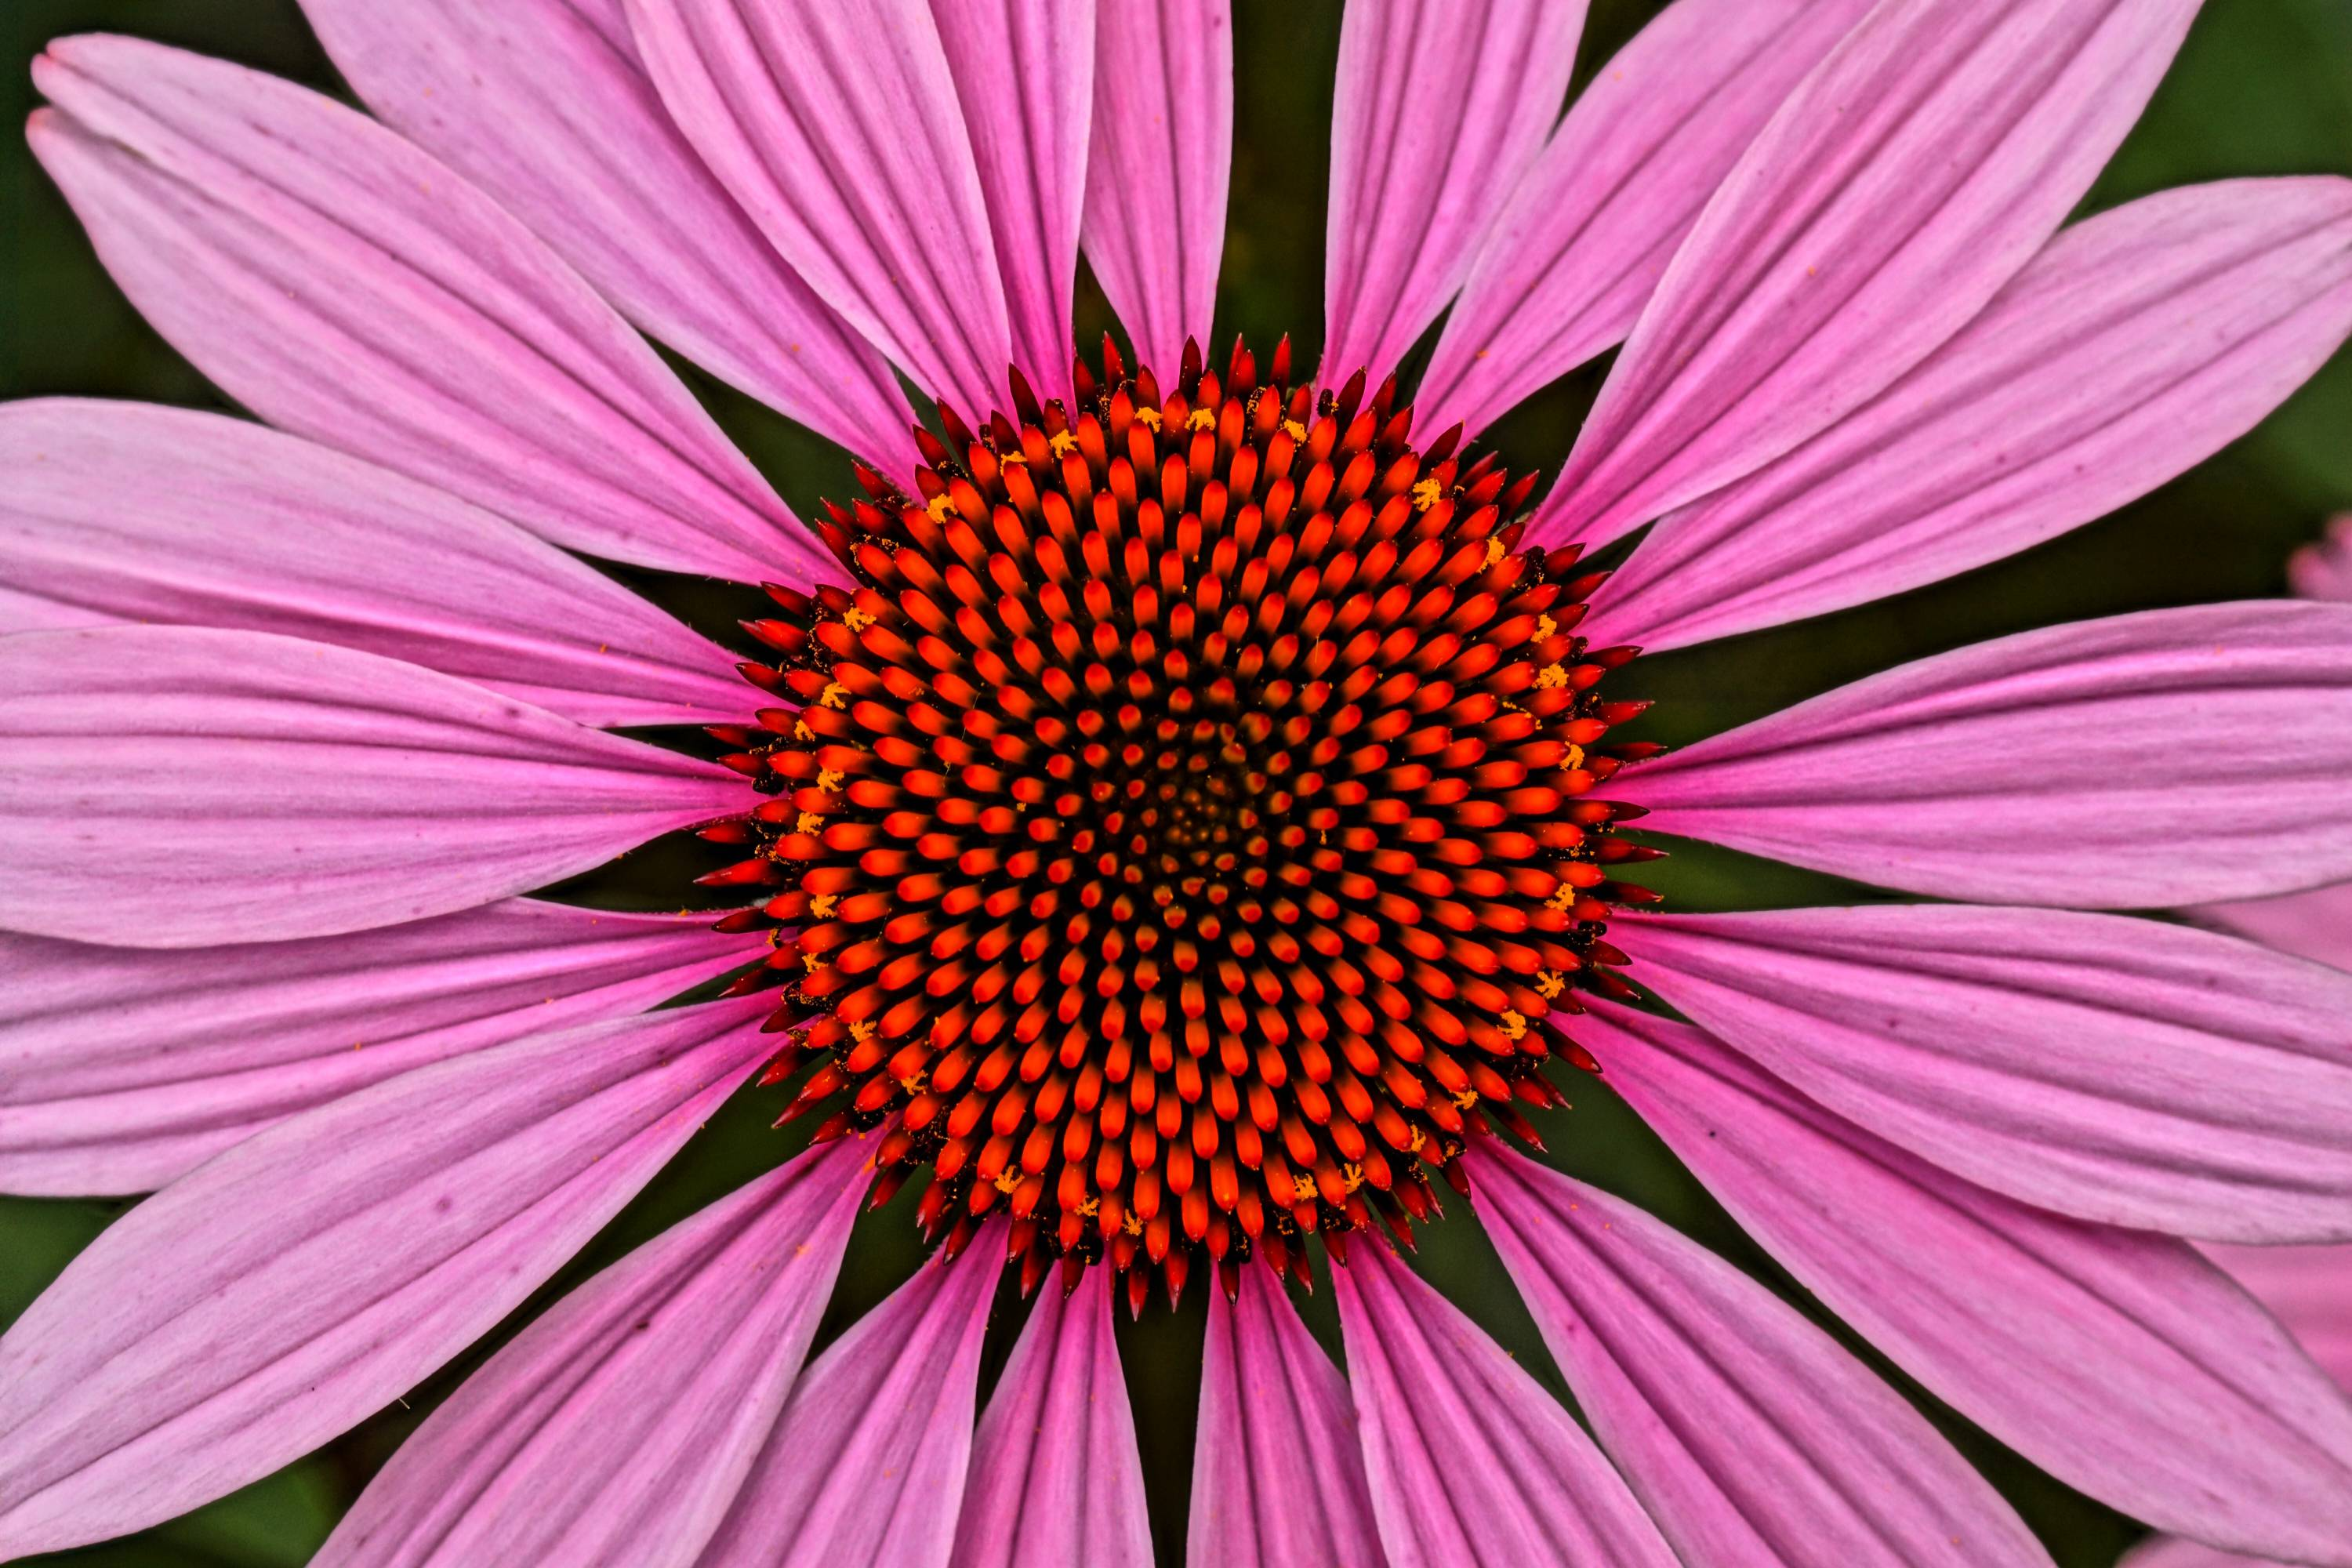 I photographed this flower on a trip to Cantigny Park in Wheaton. This cone flower explodes with radiating orange and pink colors. The variety of nature's patterns is amazing!